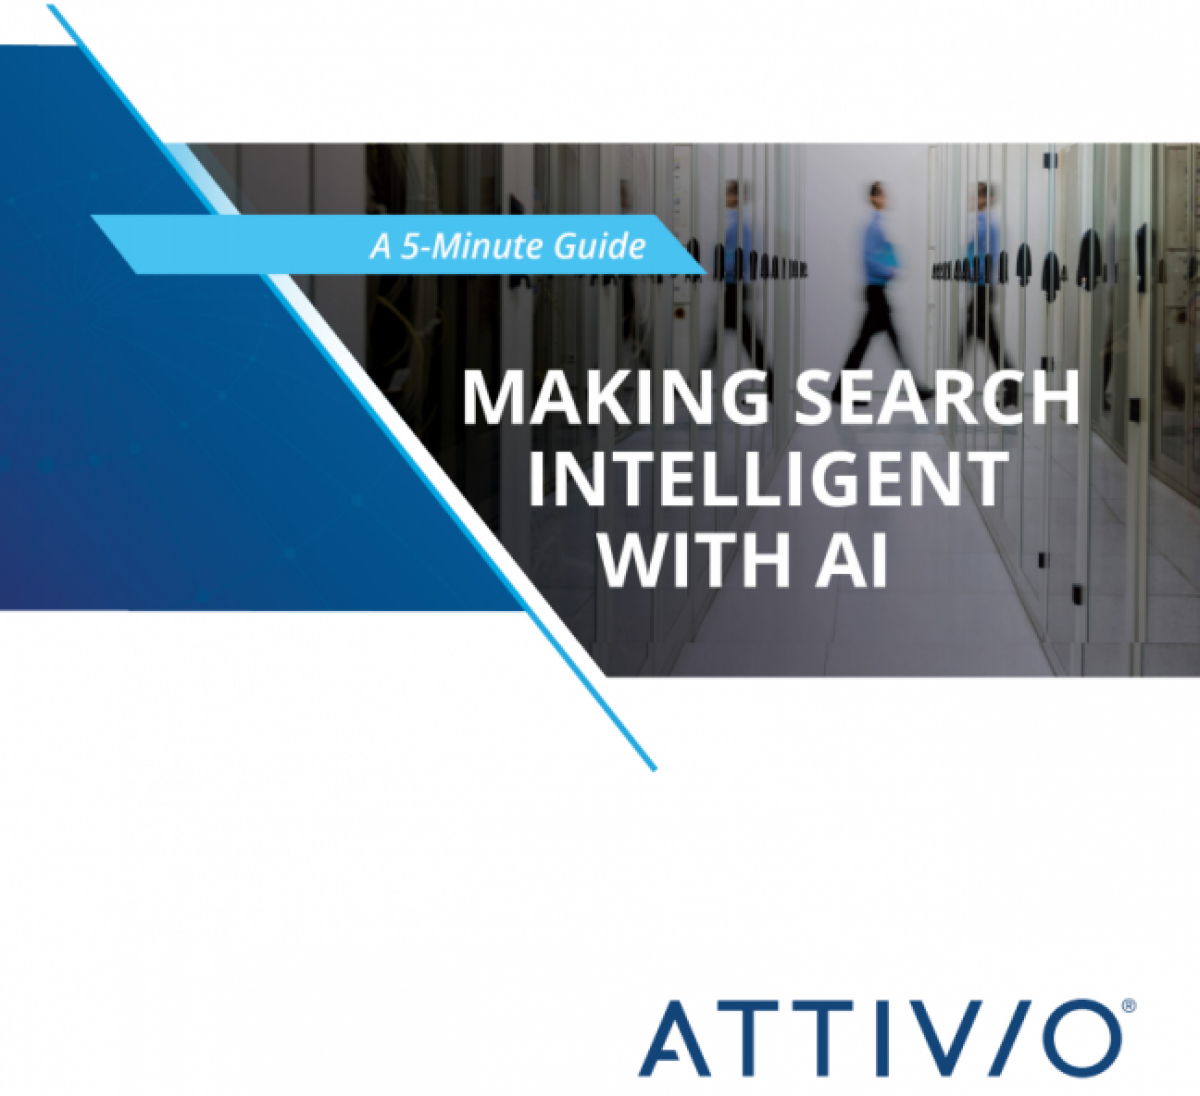 5-Minute Guide: Making Search Intelligent with AI